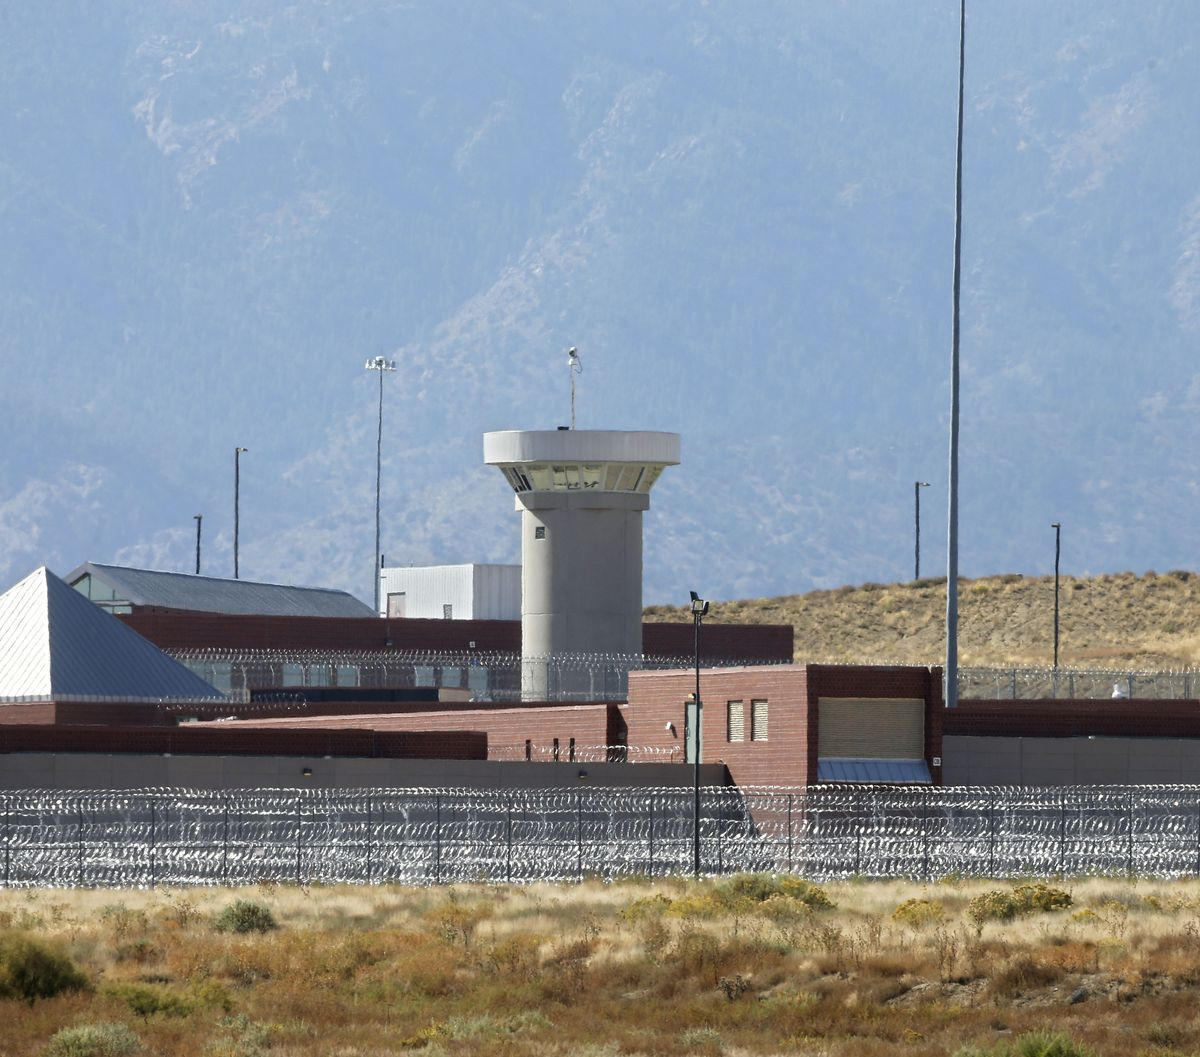 5 things to know about the 'escape proof' supermax prison